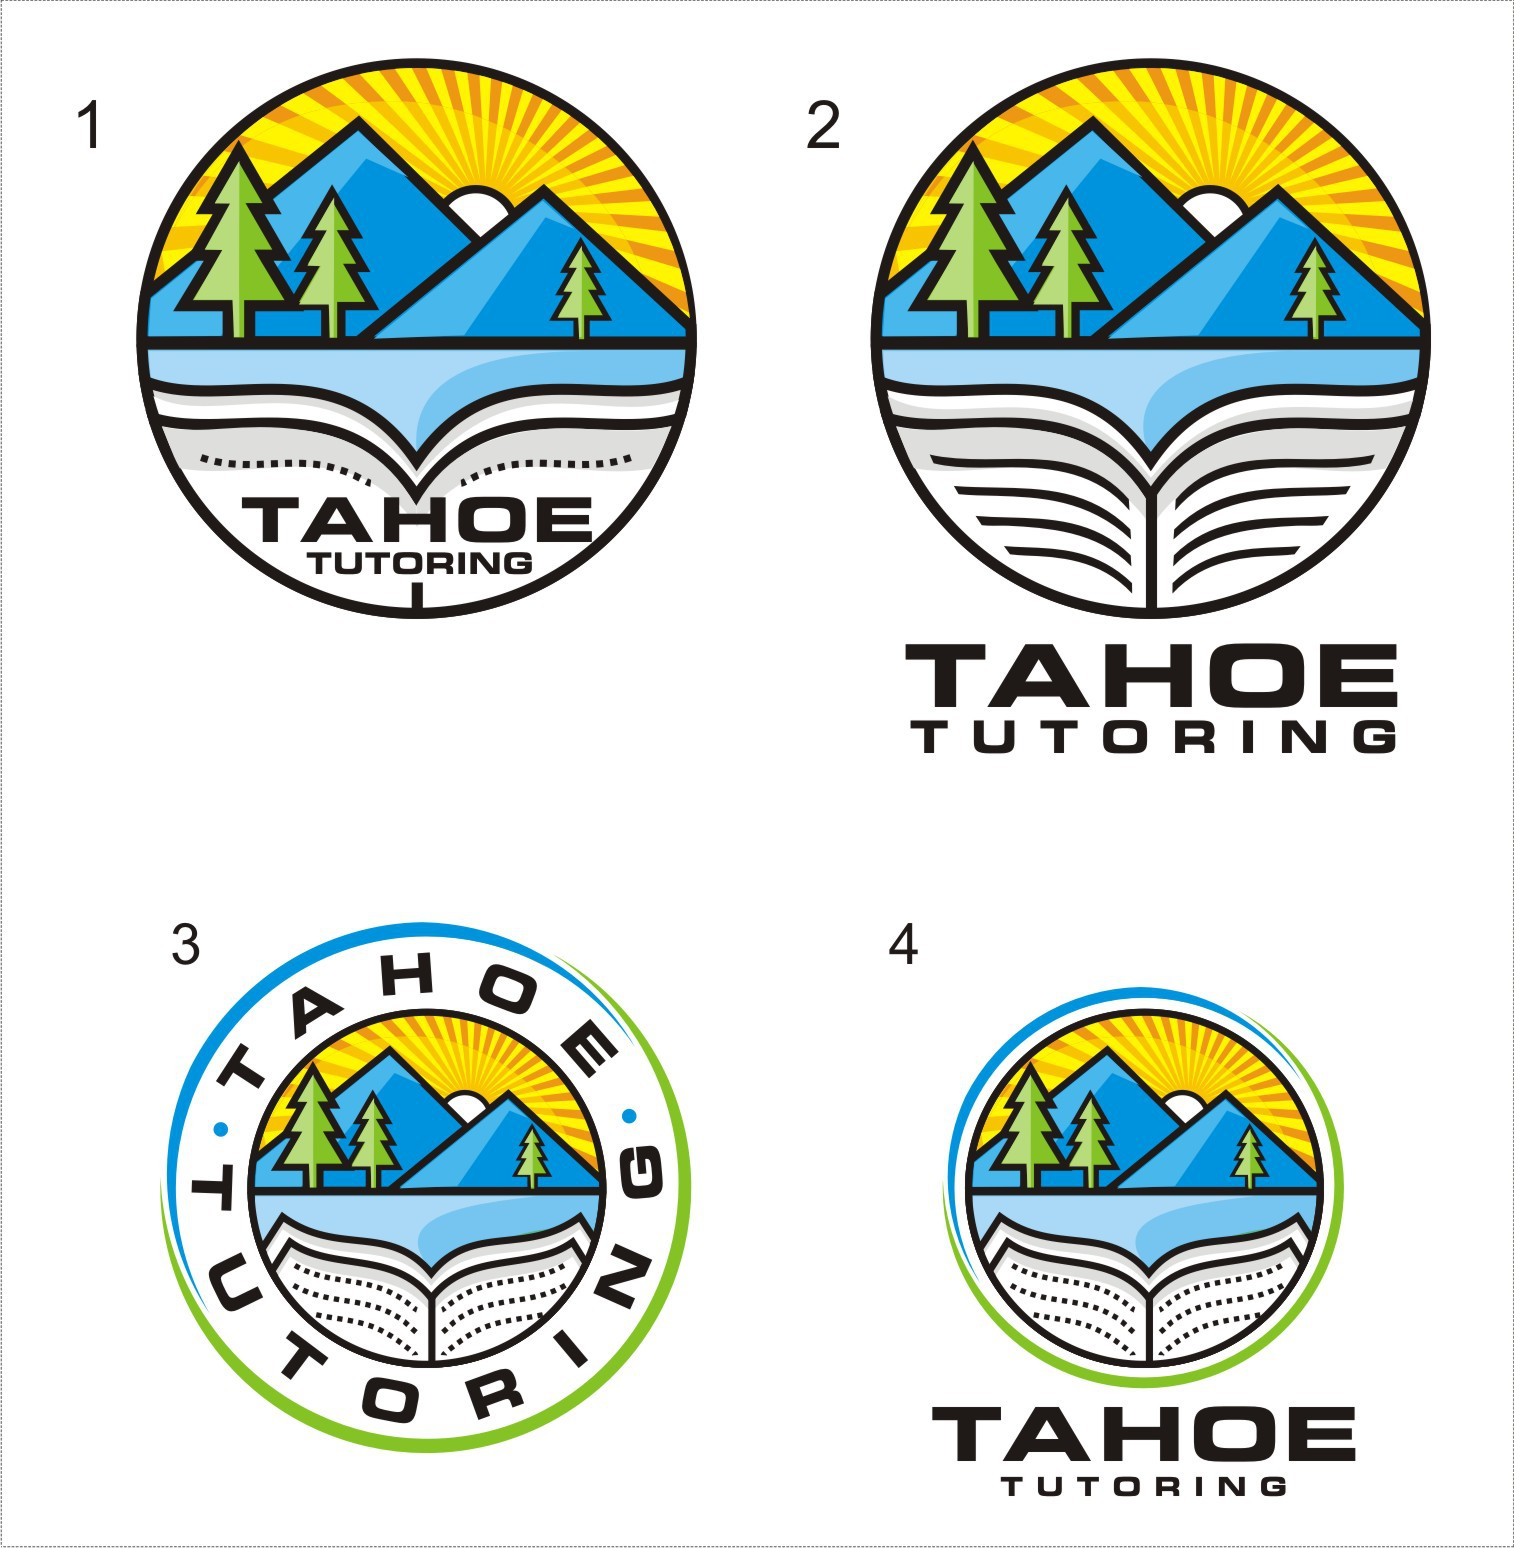 Create a catchy logo for Tahoe Tutoring - a new learning center by the lake & in the mountains